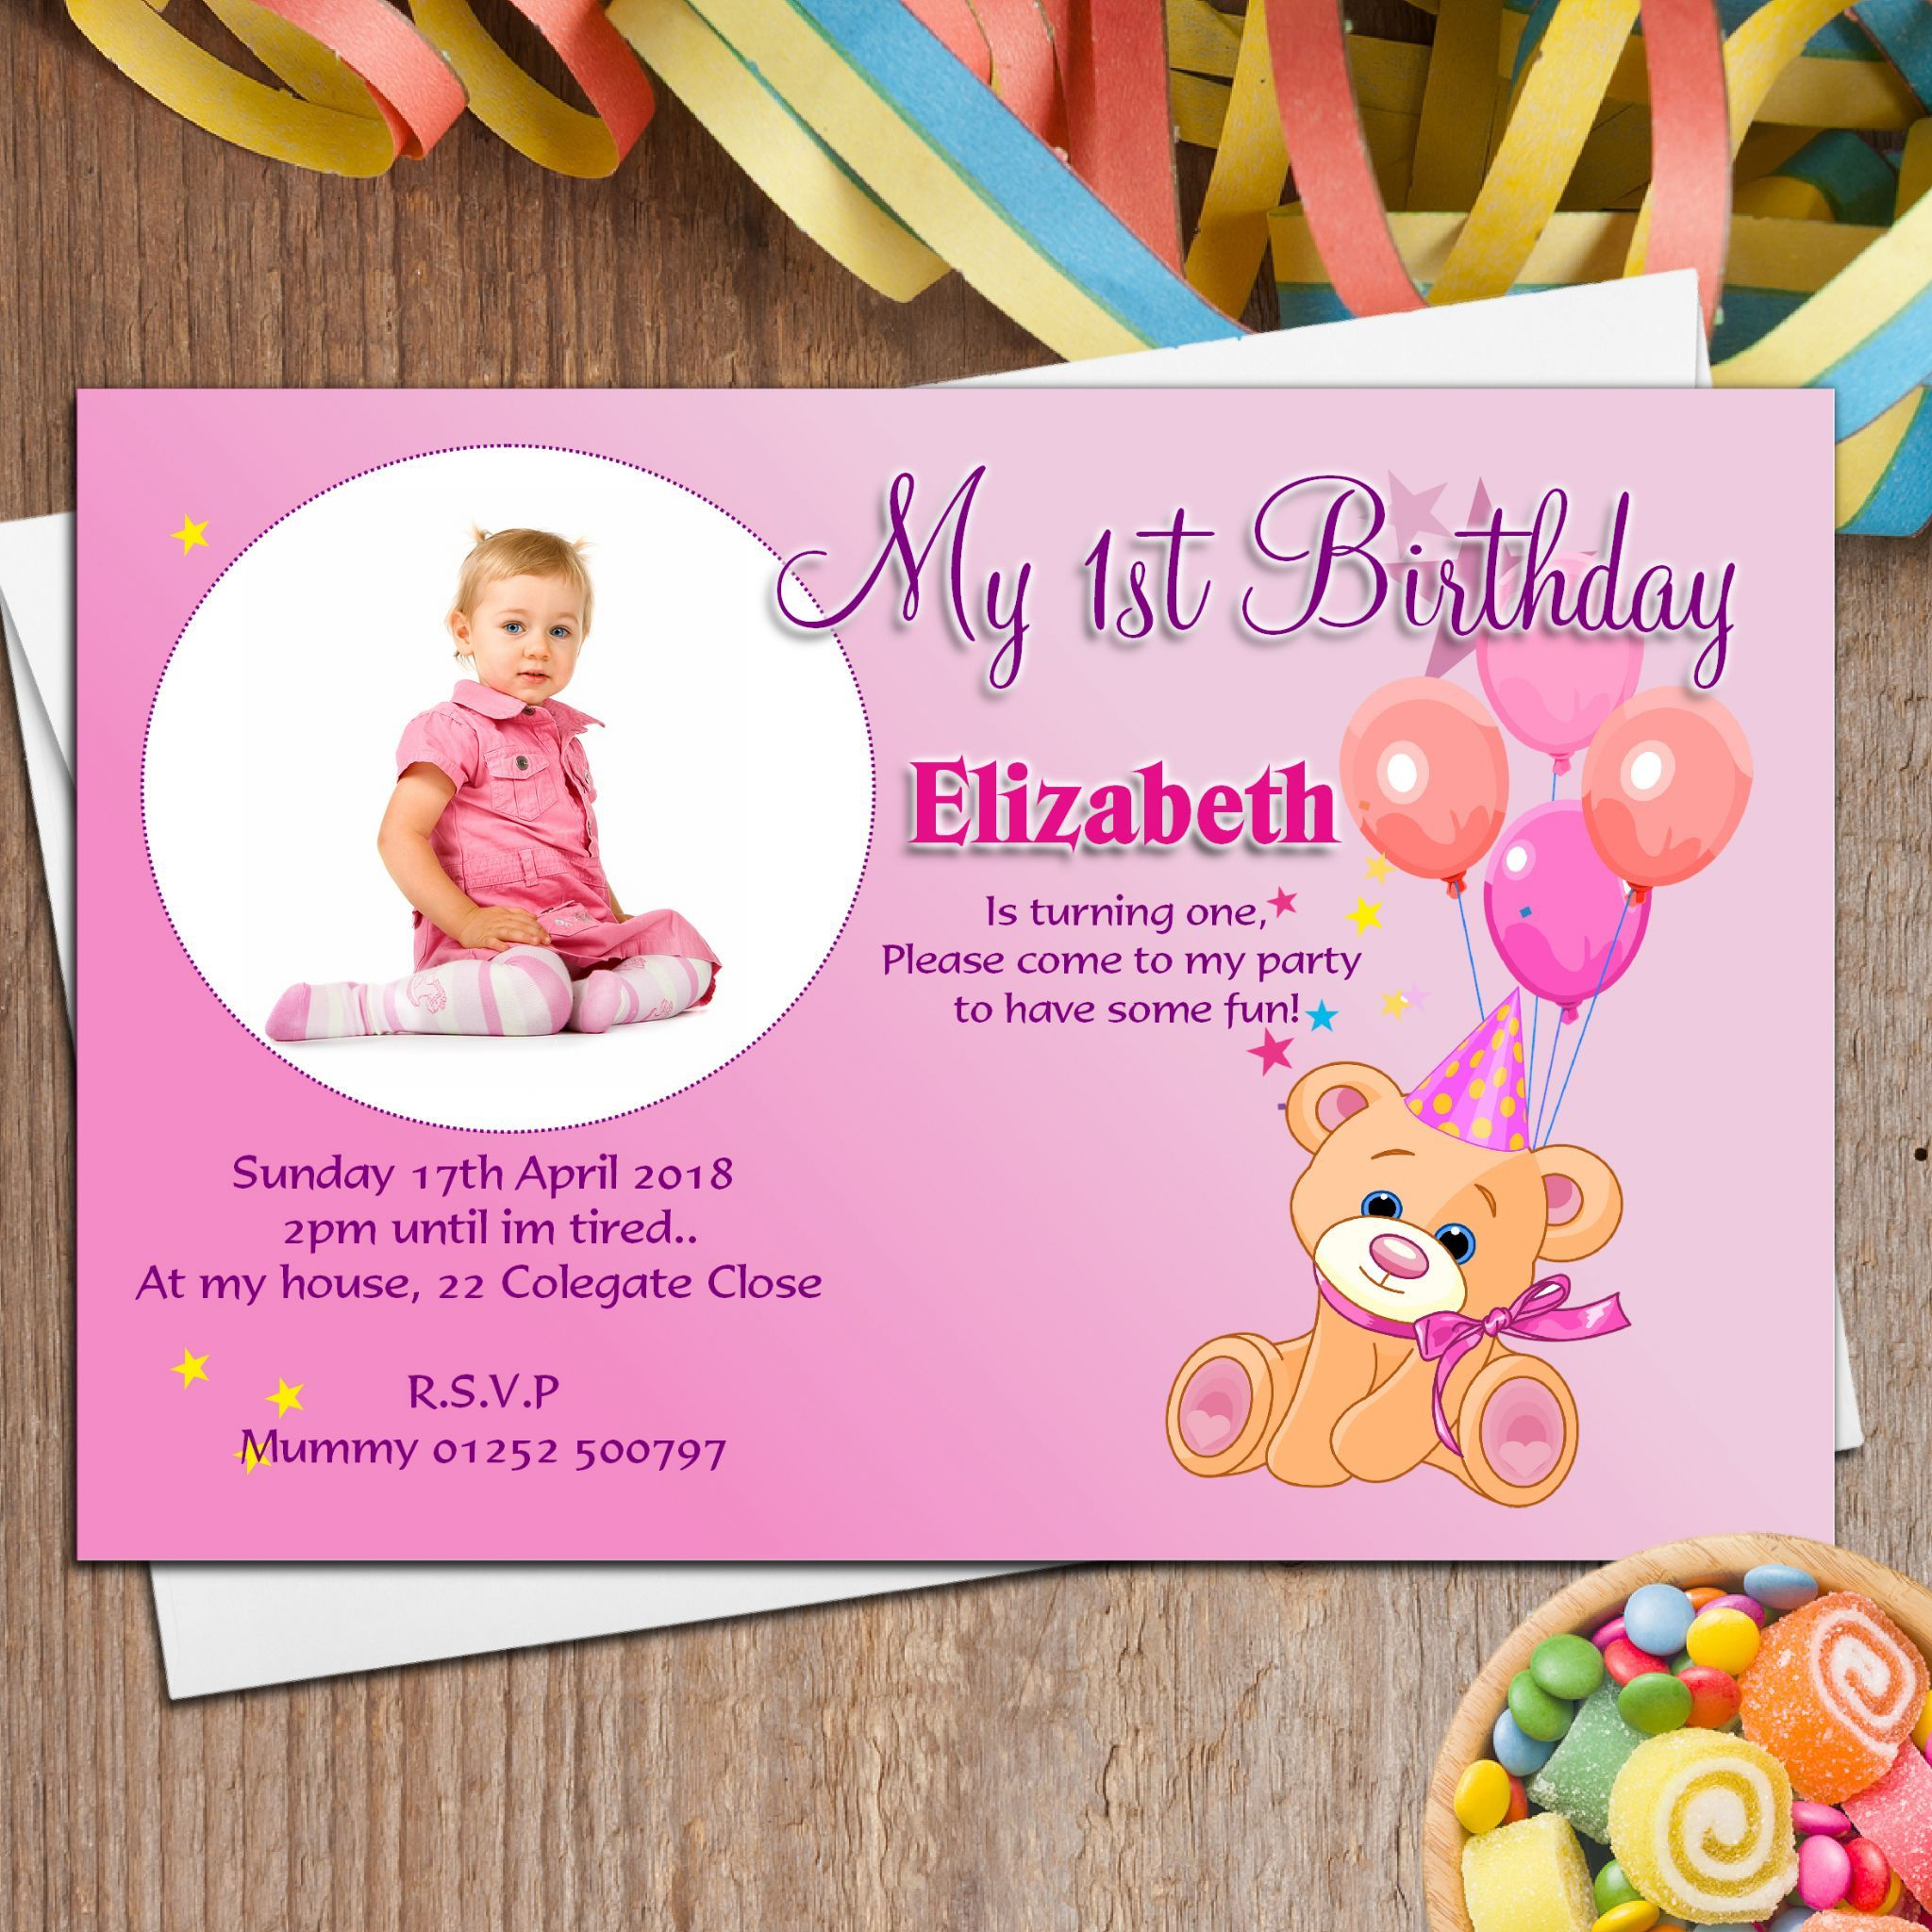 3st Birthday Invitation Cards For Baby Boy In India  Birthday